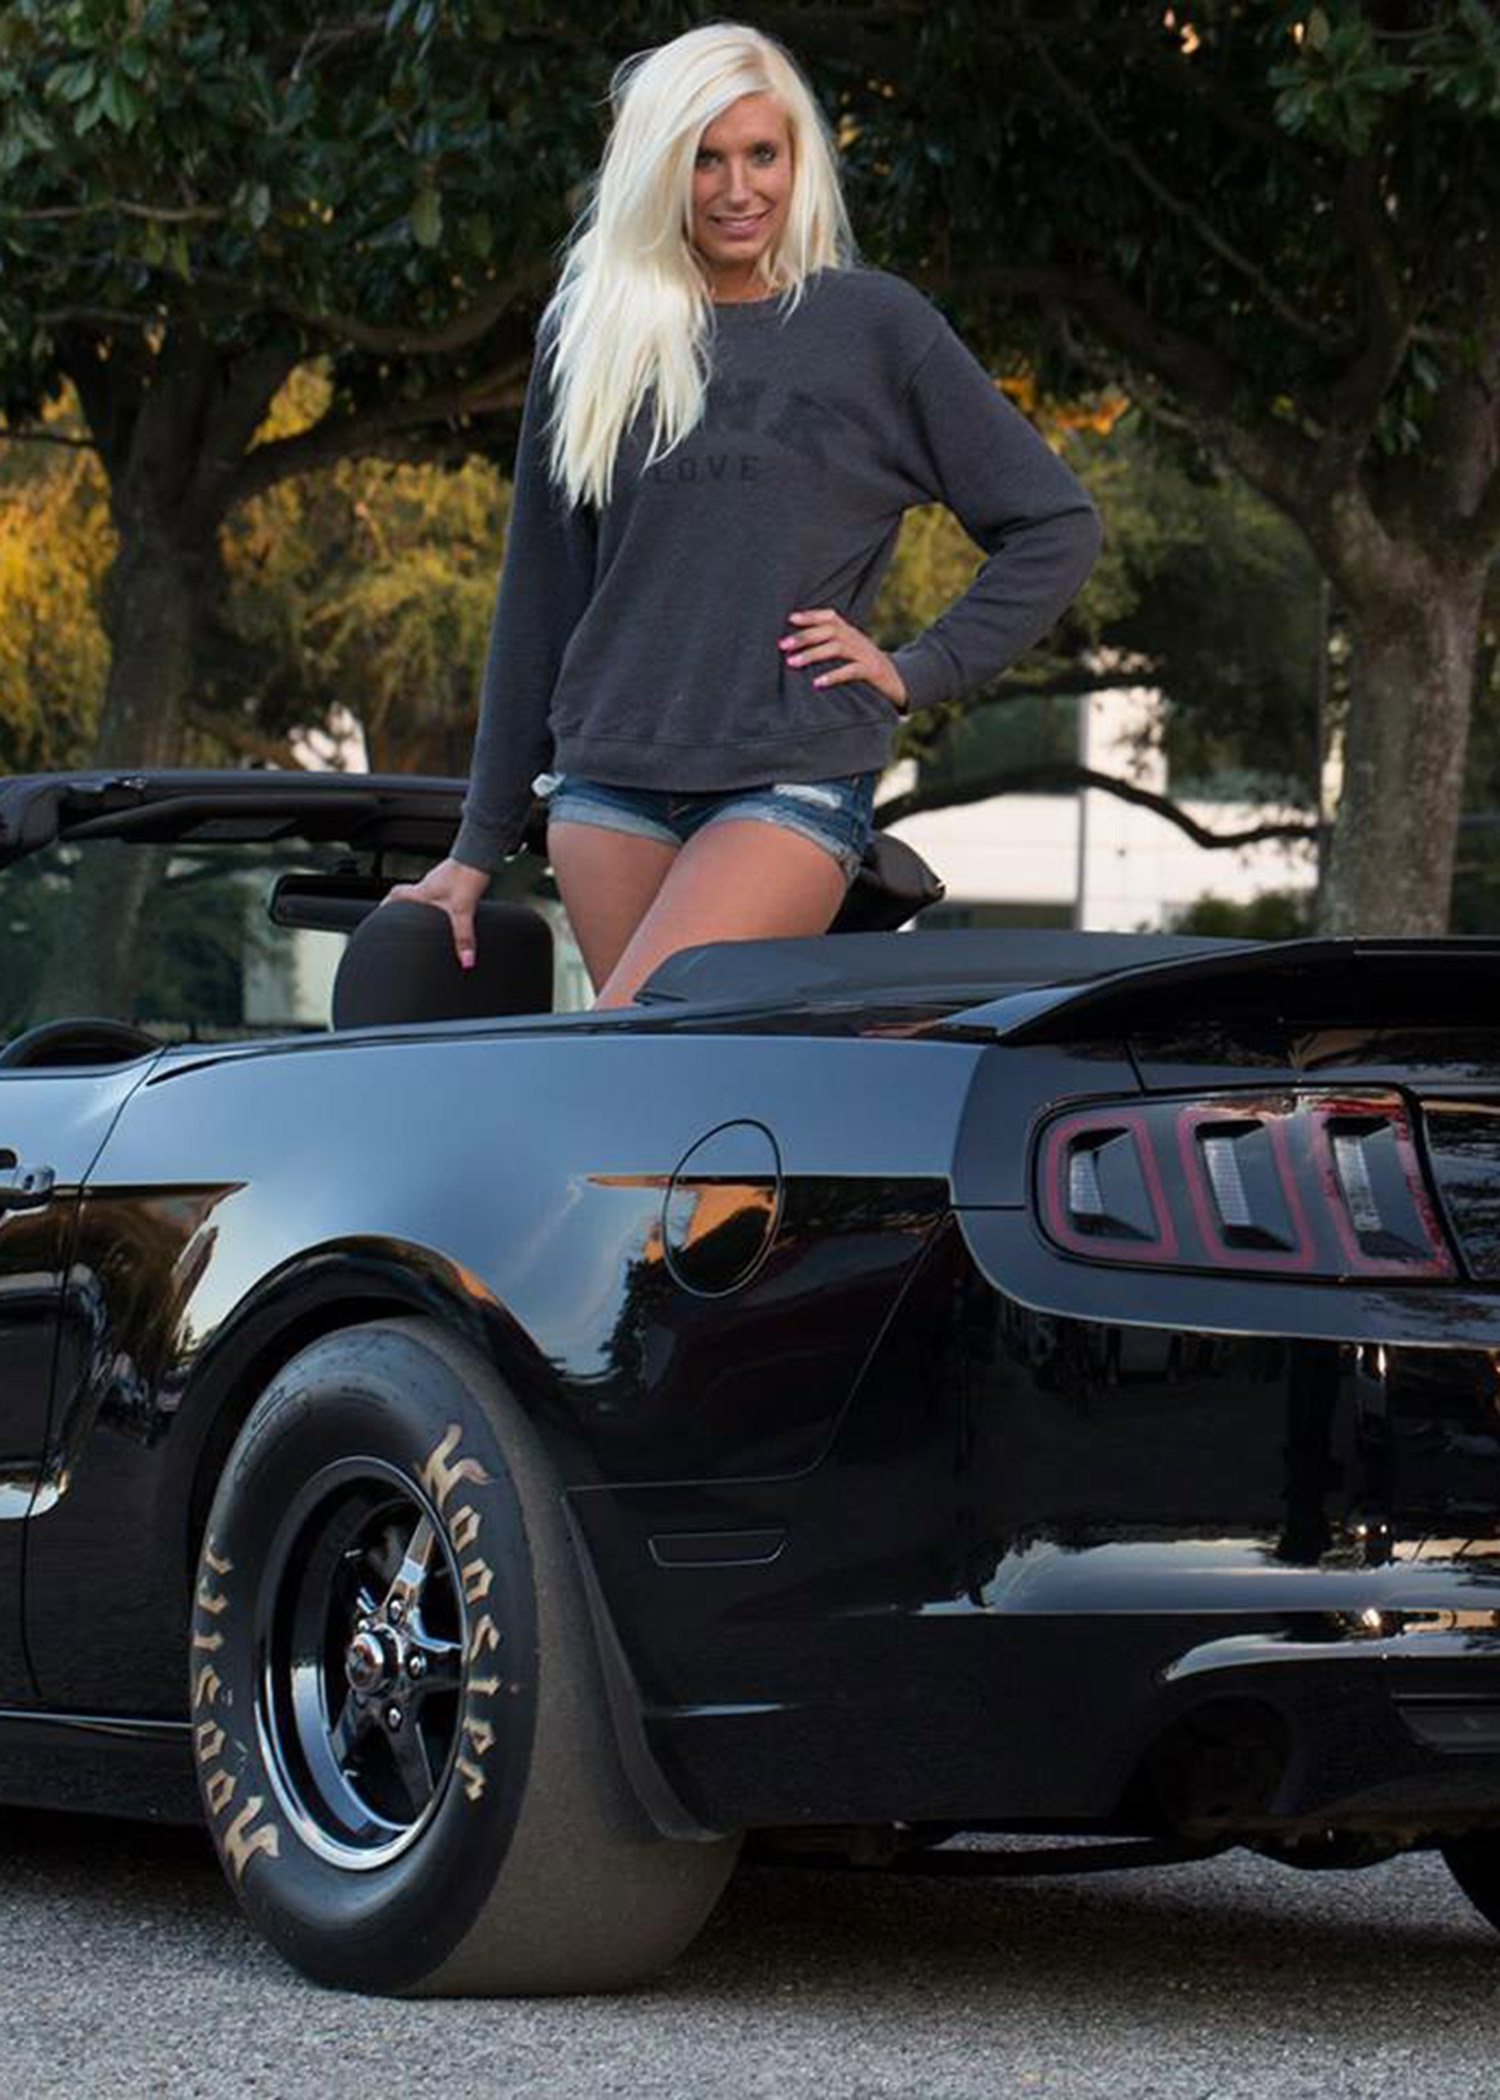 2013 Ford Mustang Gt Malorie Woods Inside Car